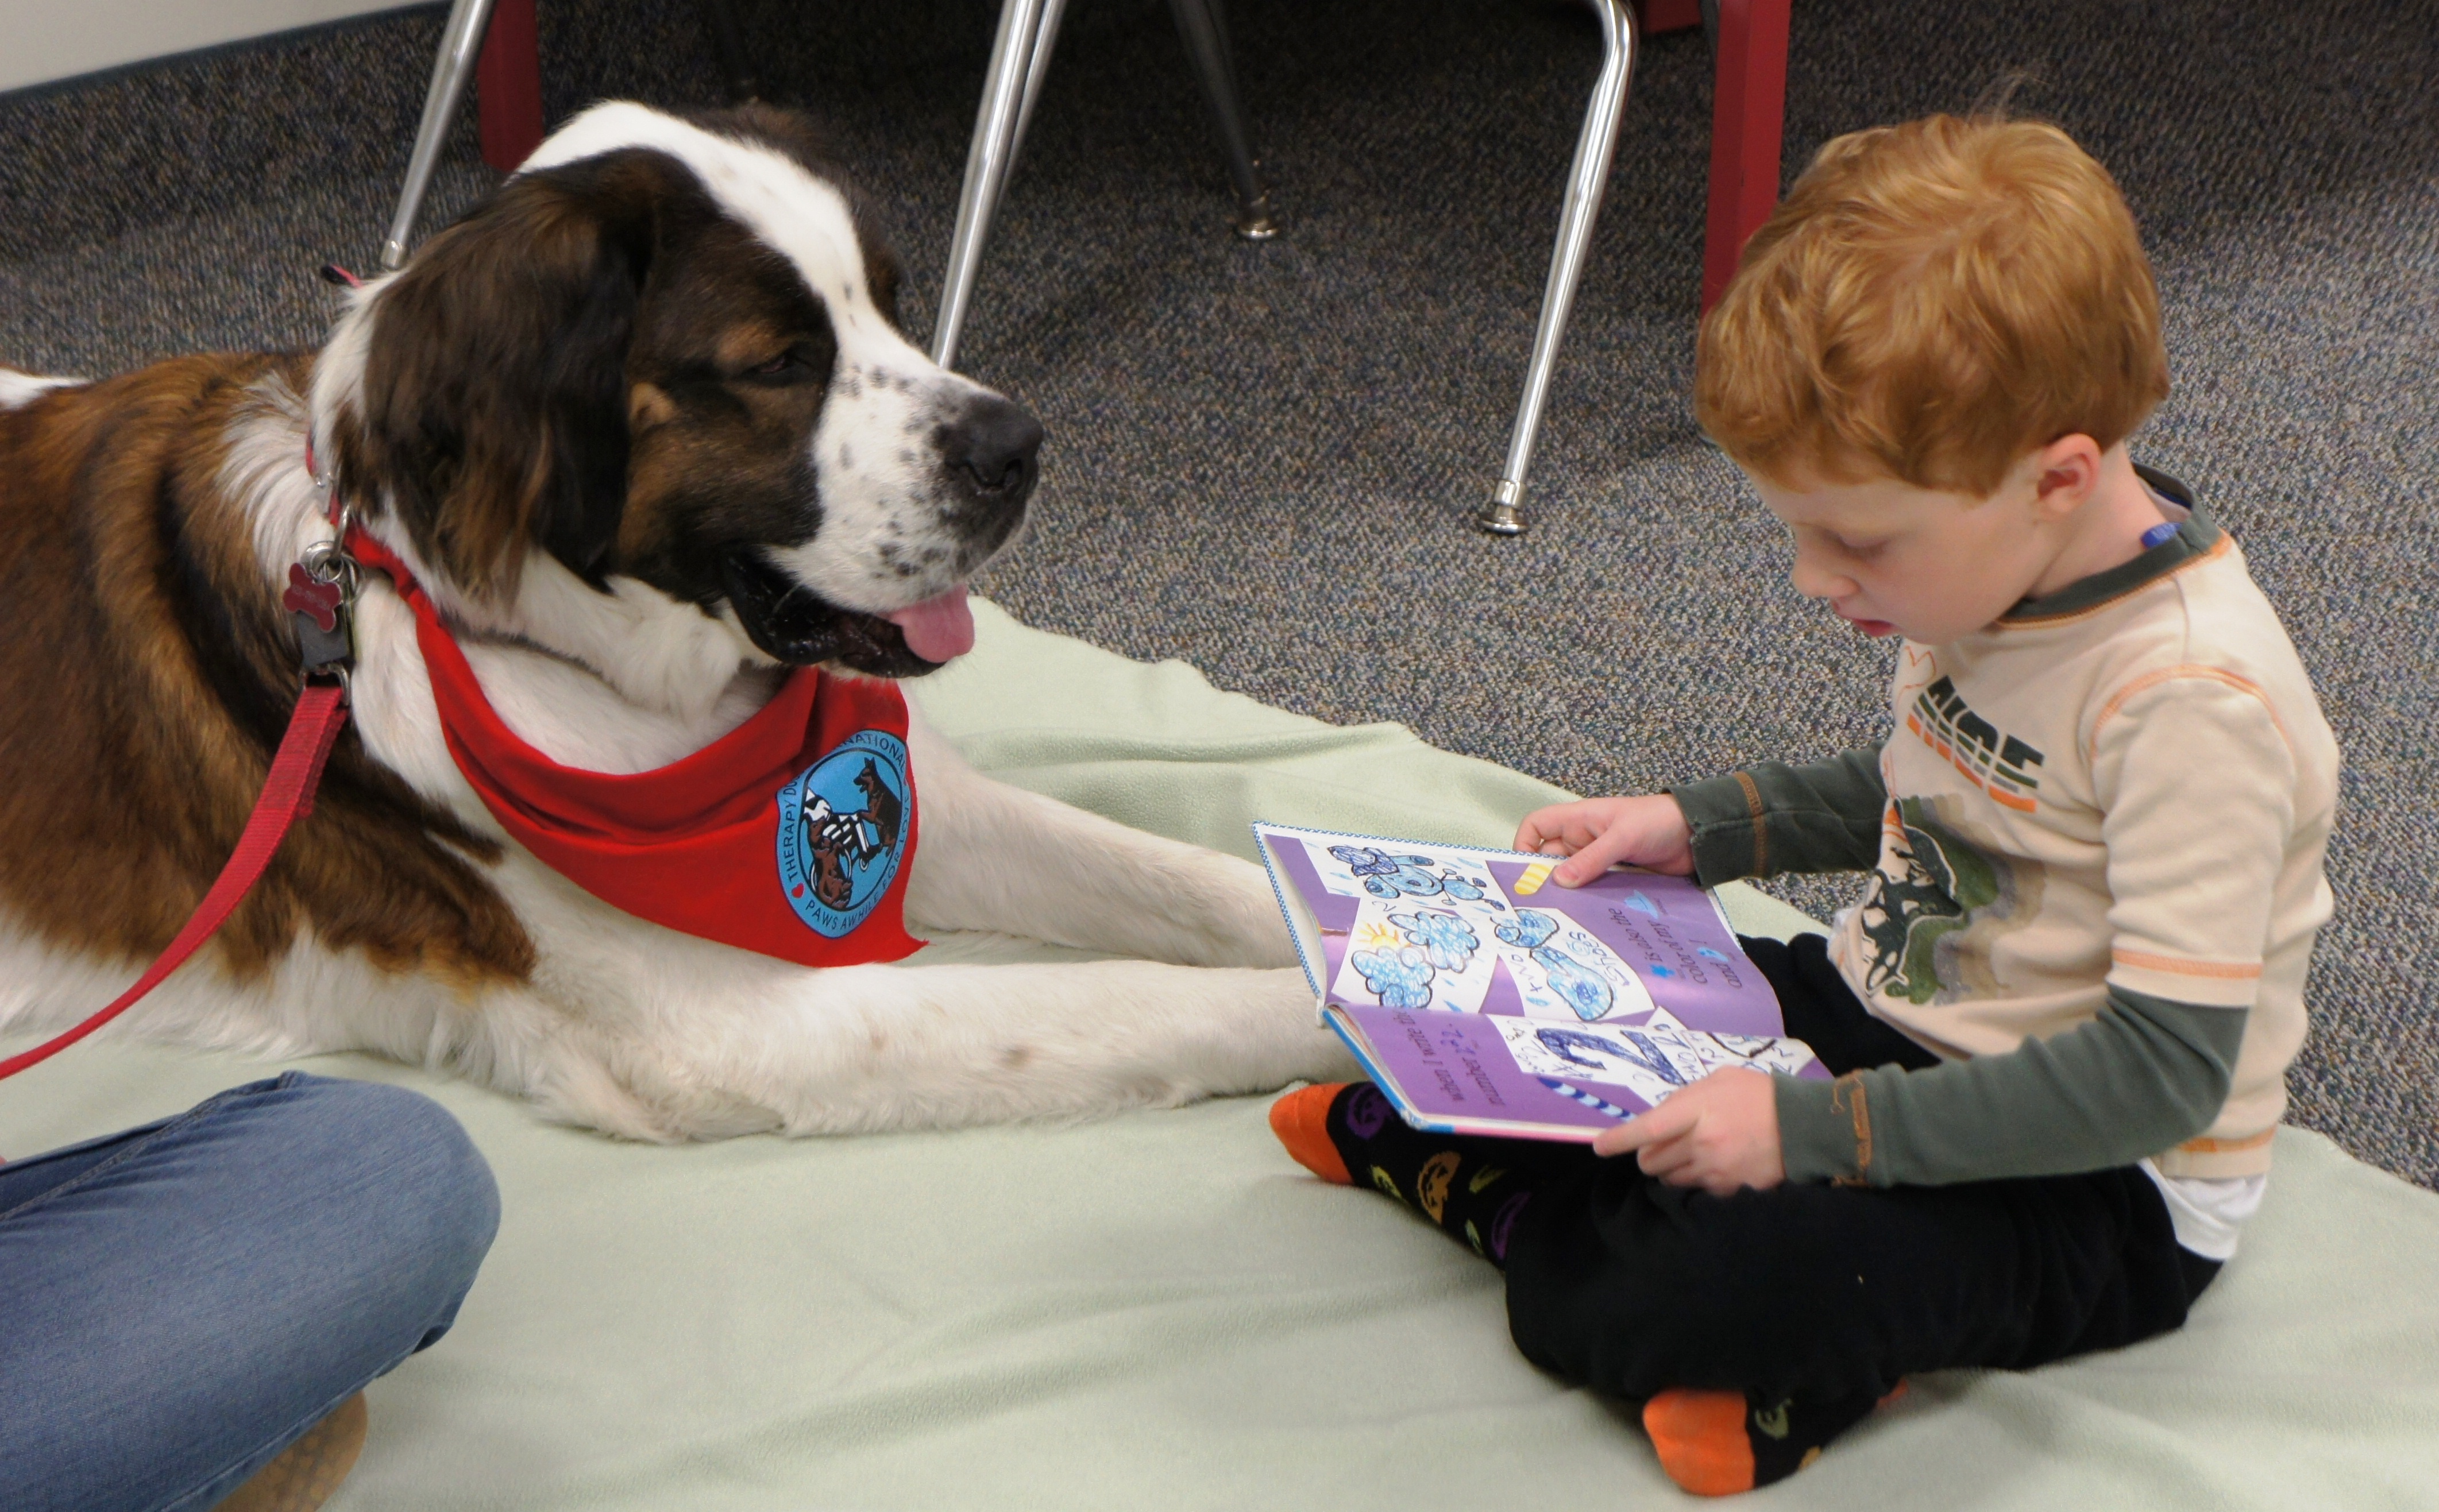 Worksheet Helping Kids To Read dogs helping kids to read archives 3milliondogs 21 loyal read